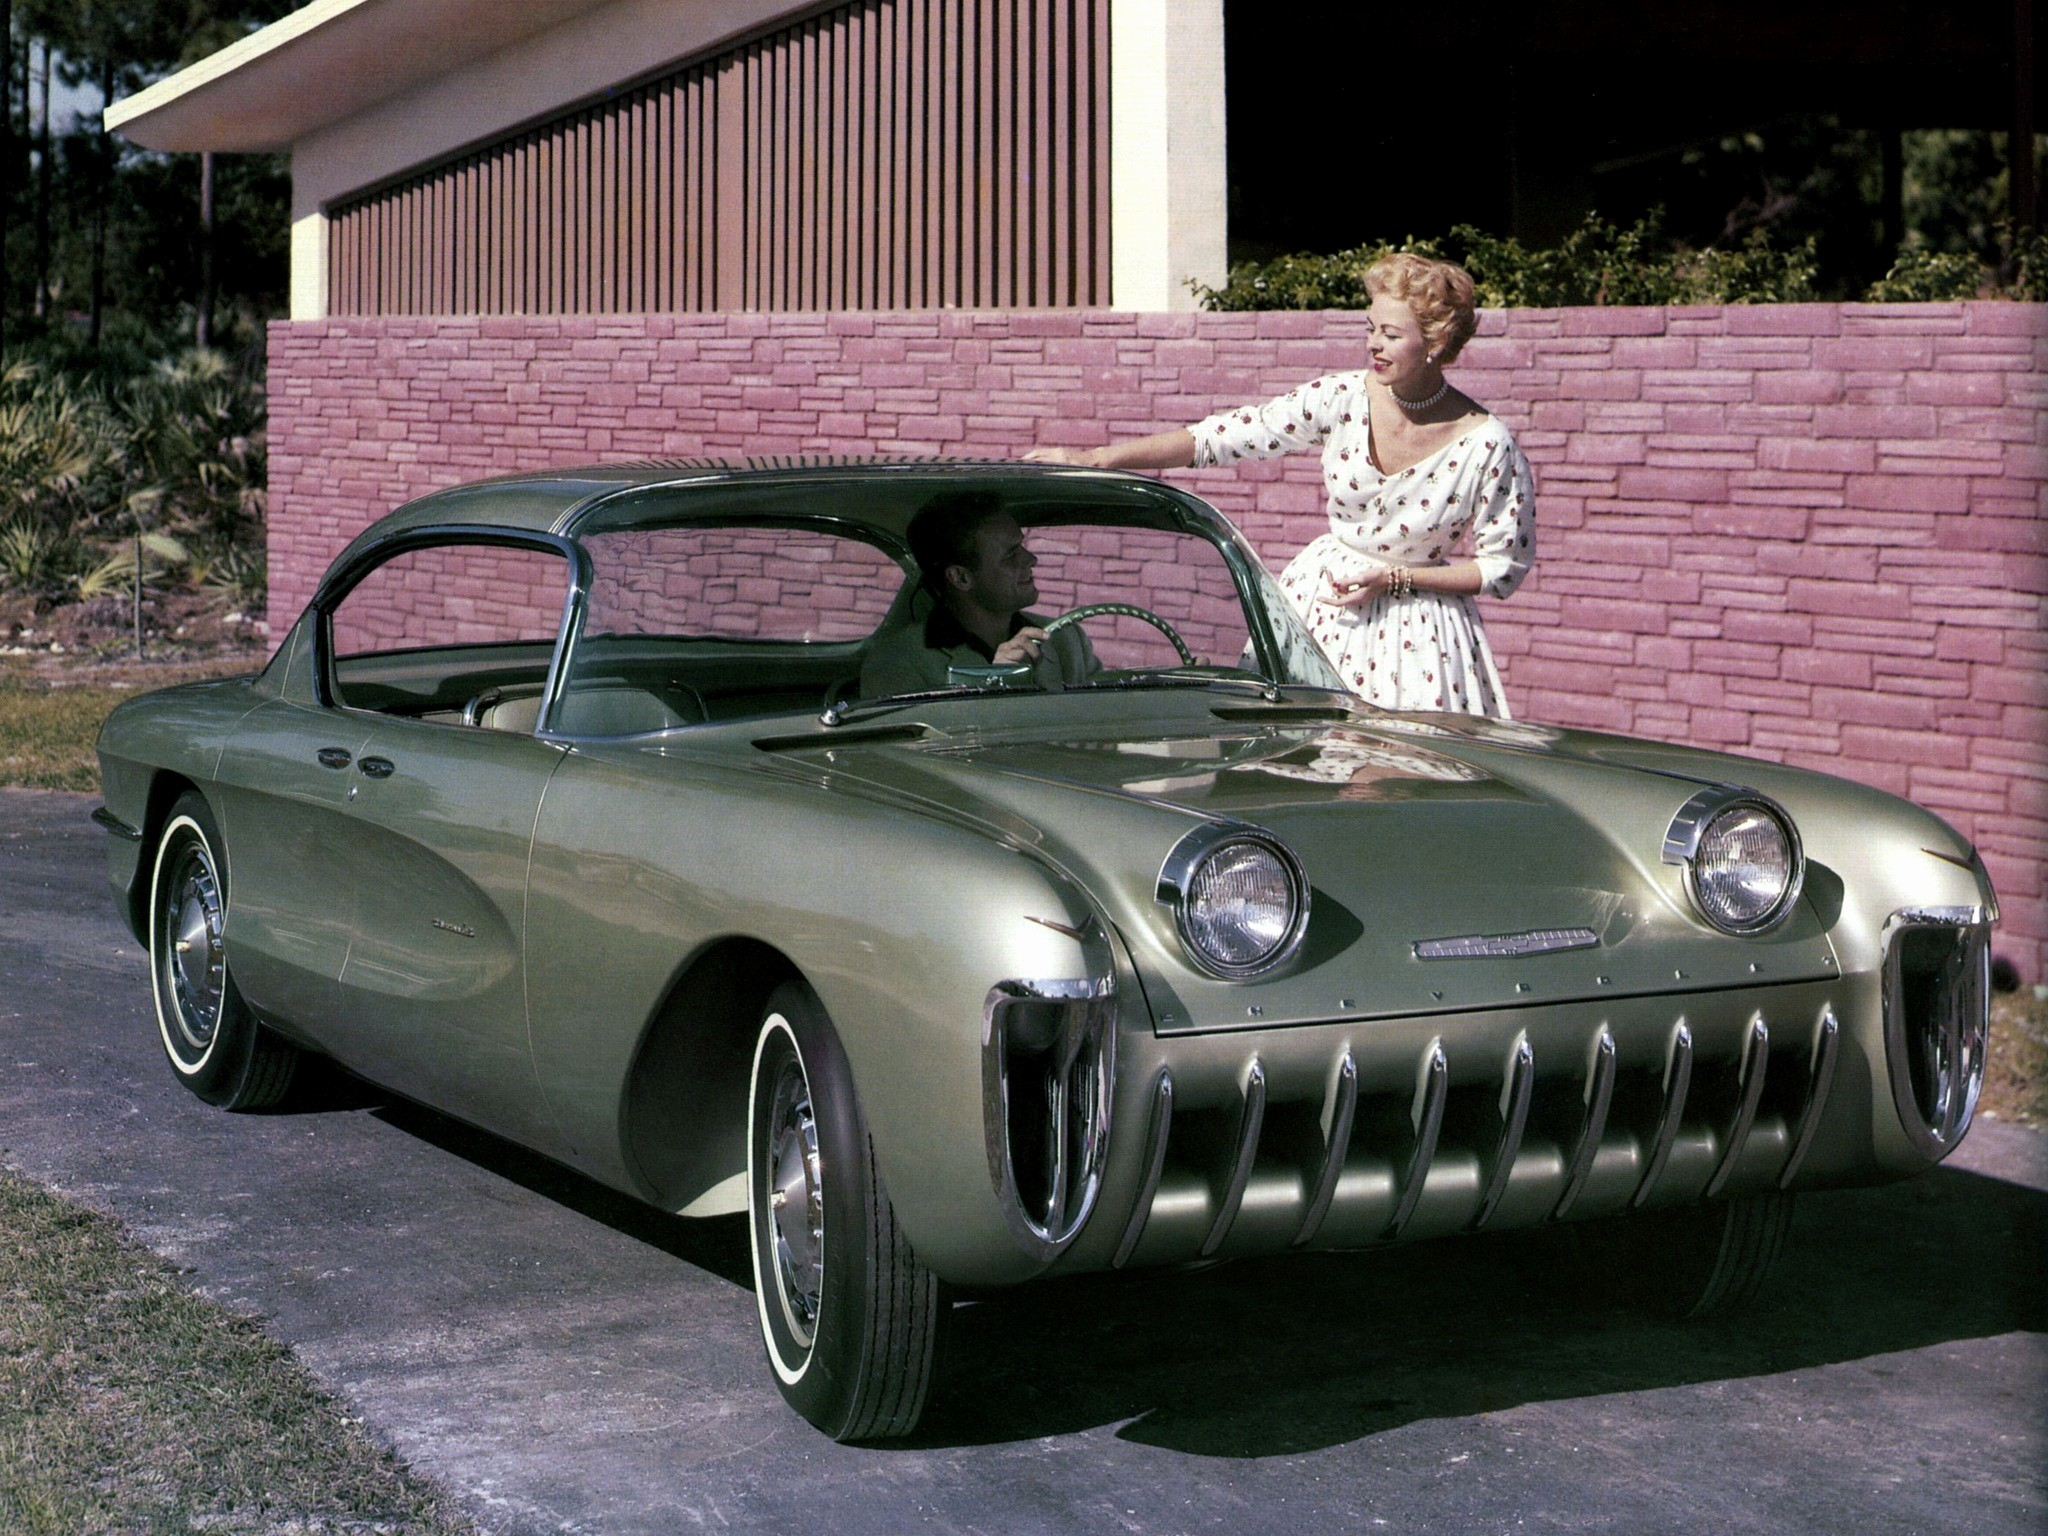 Cars Com Bill Of Sale Awesome Chevrolet Biscayne Concept Car 1955 – Old Concept Cars